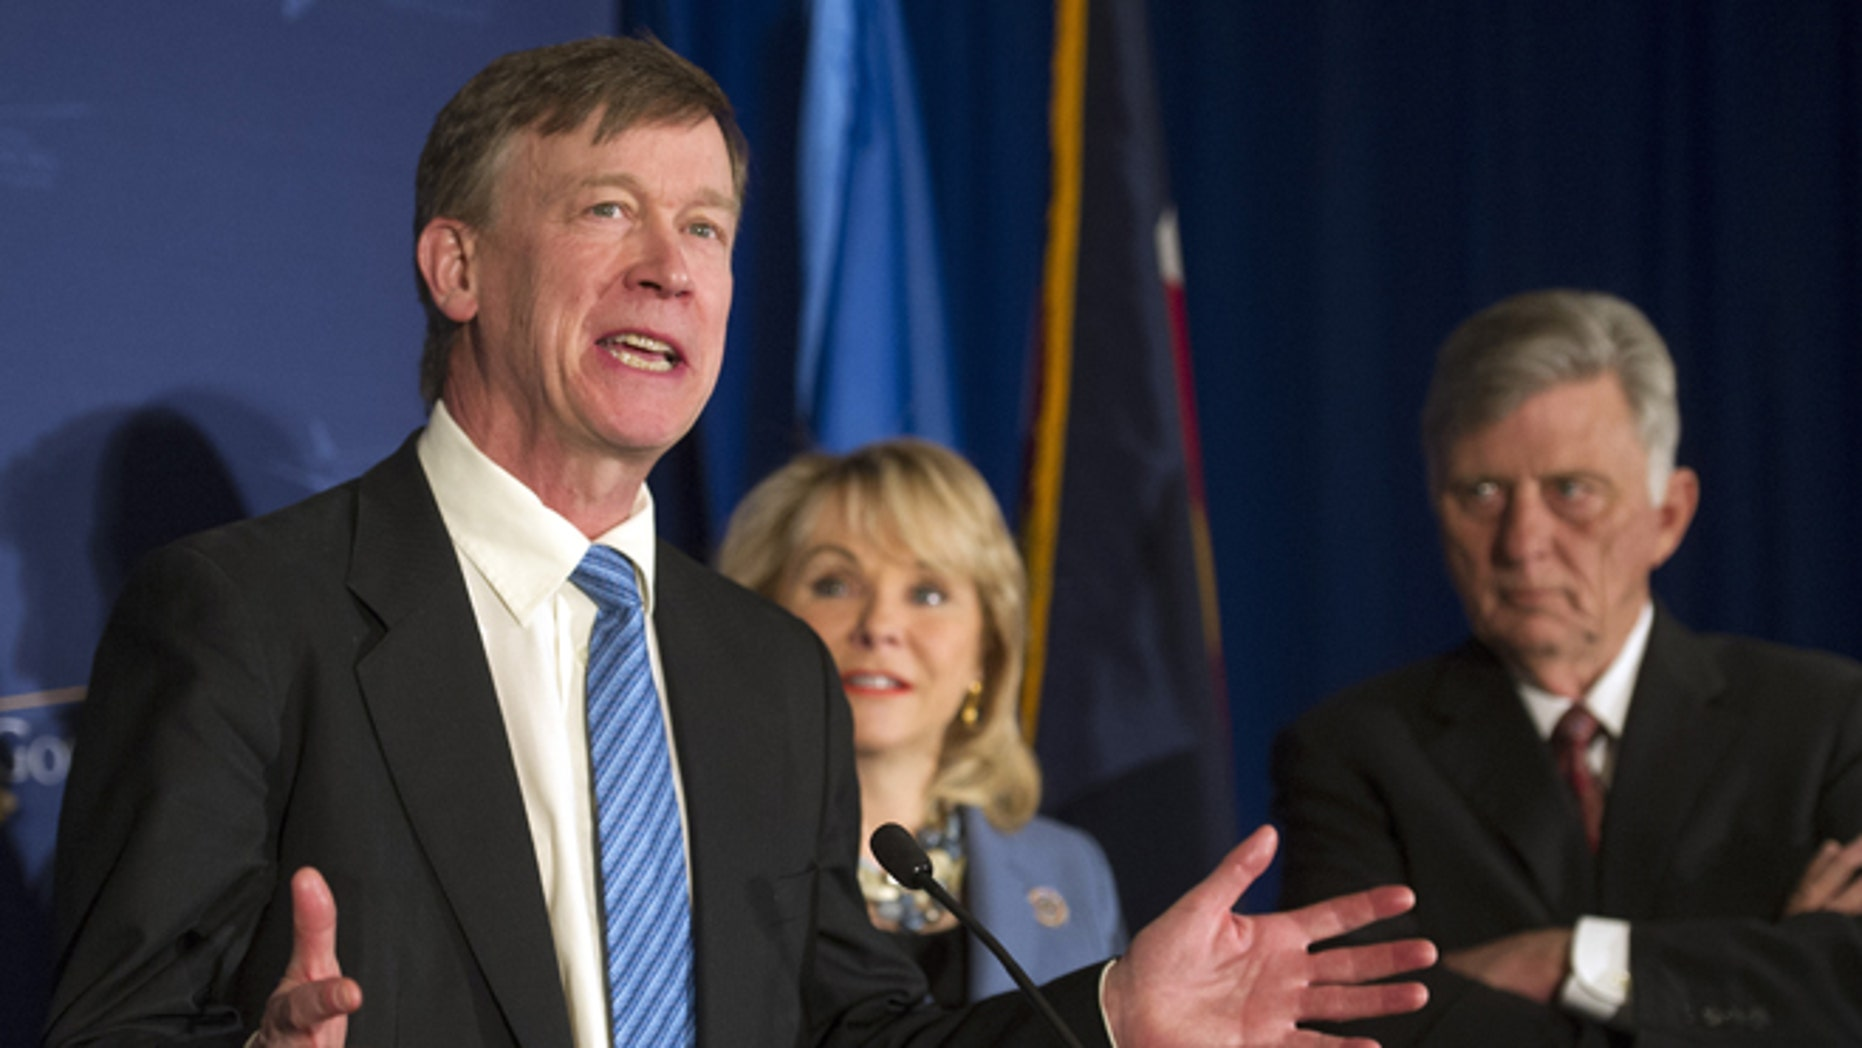 Feb. 22, 2014: Colorado Gov. John Hickenlooper, left, with Arkansas Gov. Mike Beebe, right, and Oklahoma Gov. Mary Fallin at an NGA's meeting in Washington, D.C.